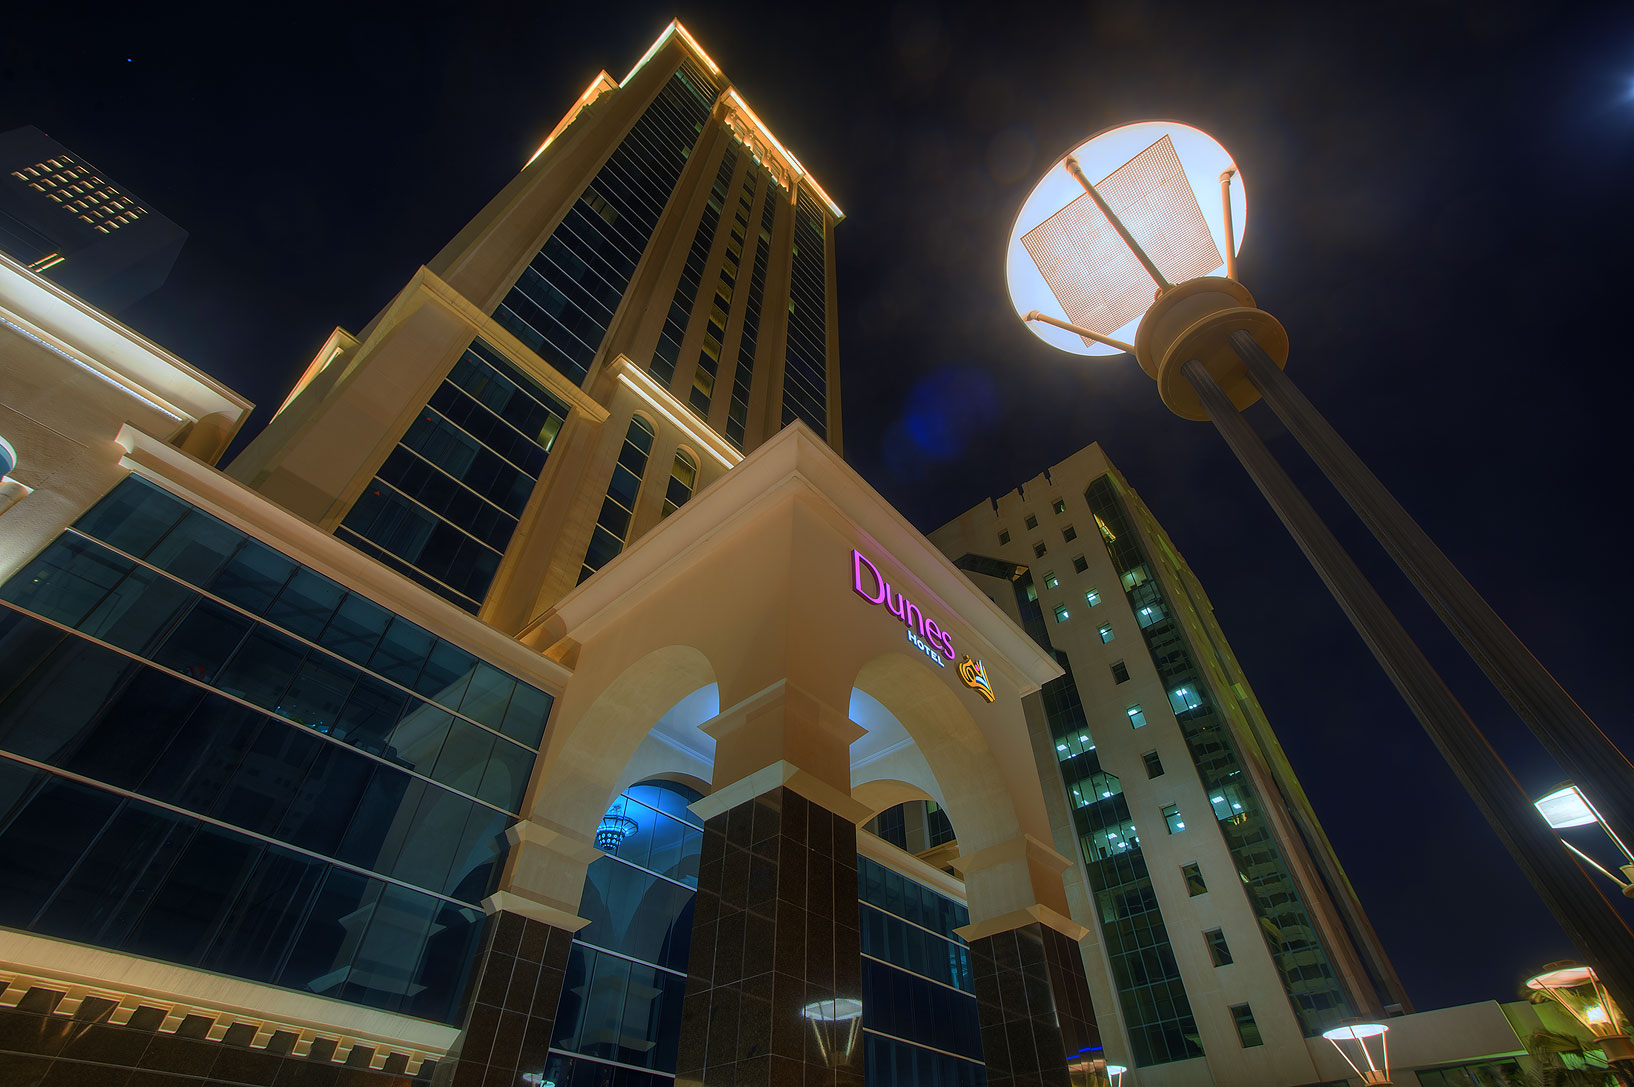 Dunes Hotel in West Bay from Al Shatt St., looking up. Doha, Qatar